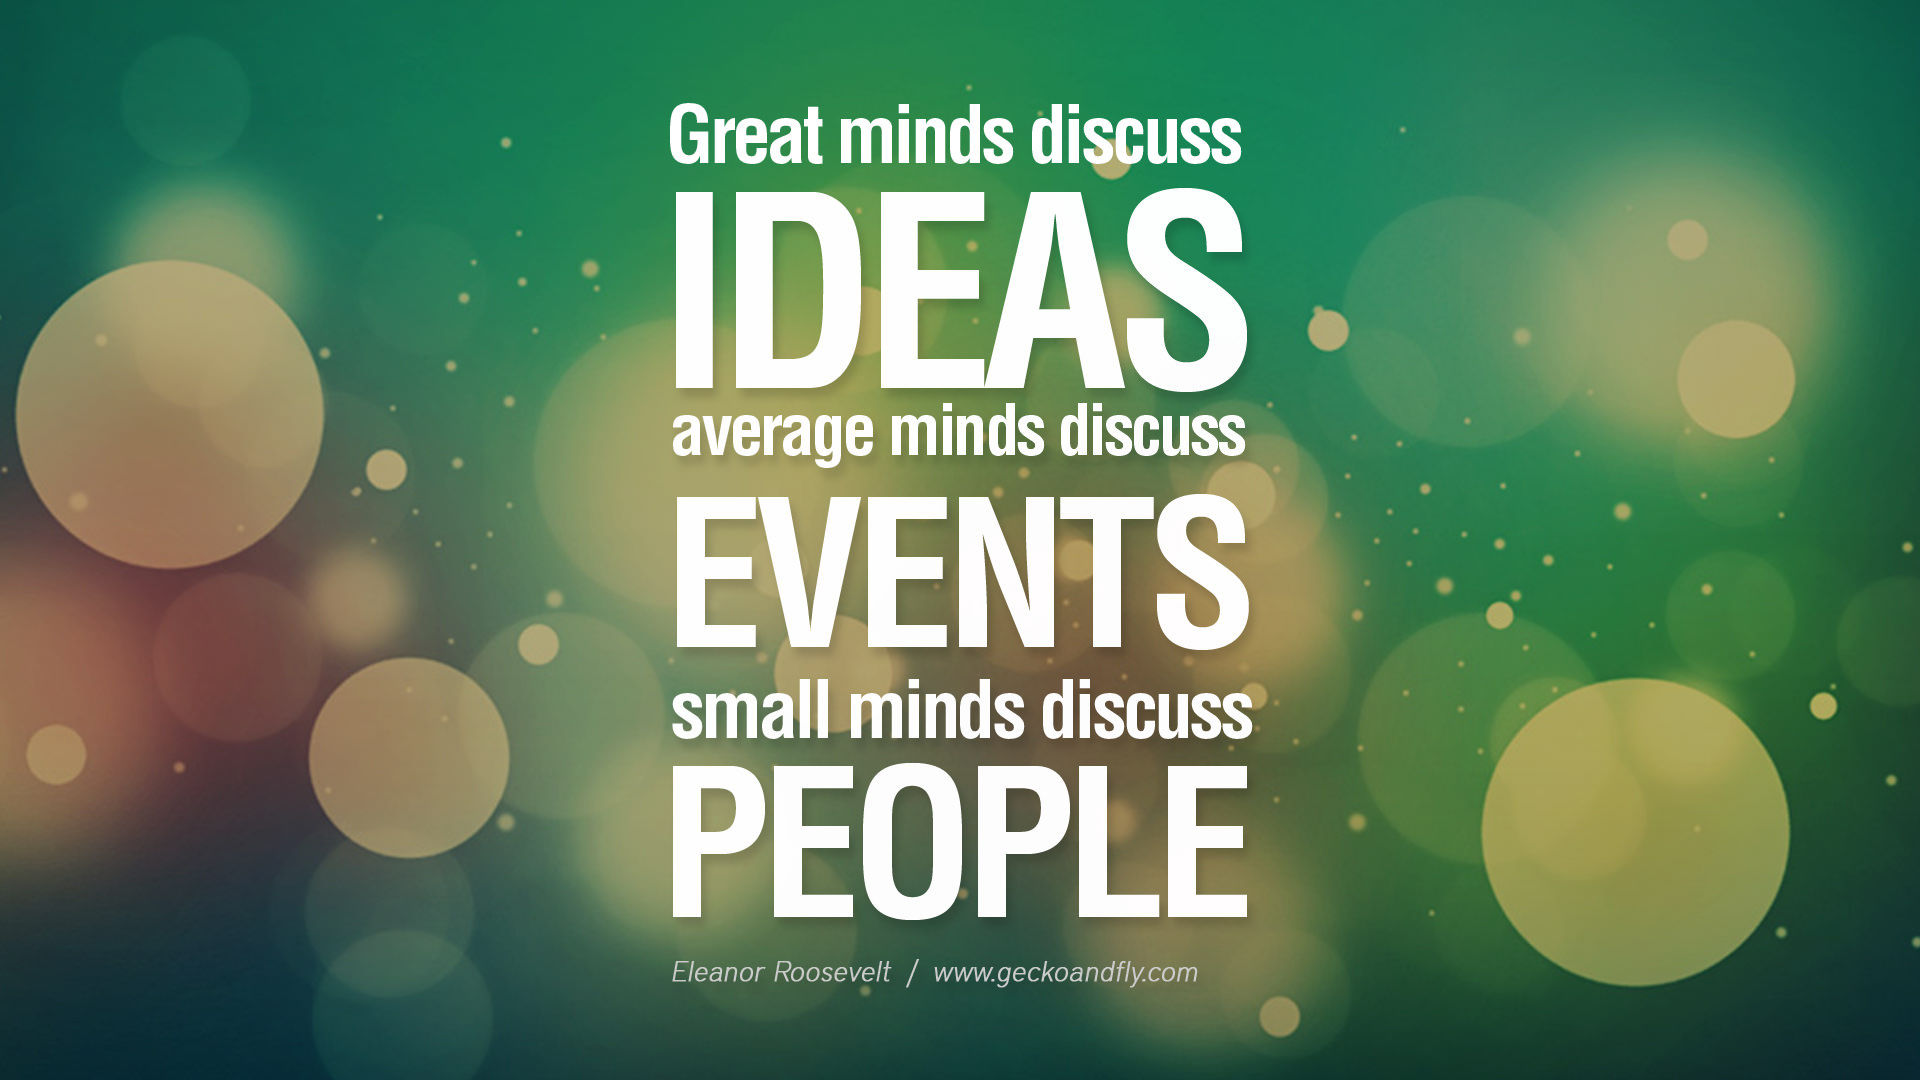 Great Minds Discuss Ideas Pictures, Photos, and Images for Facebook ...